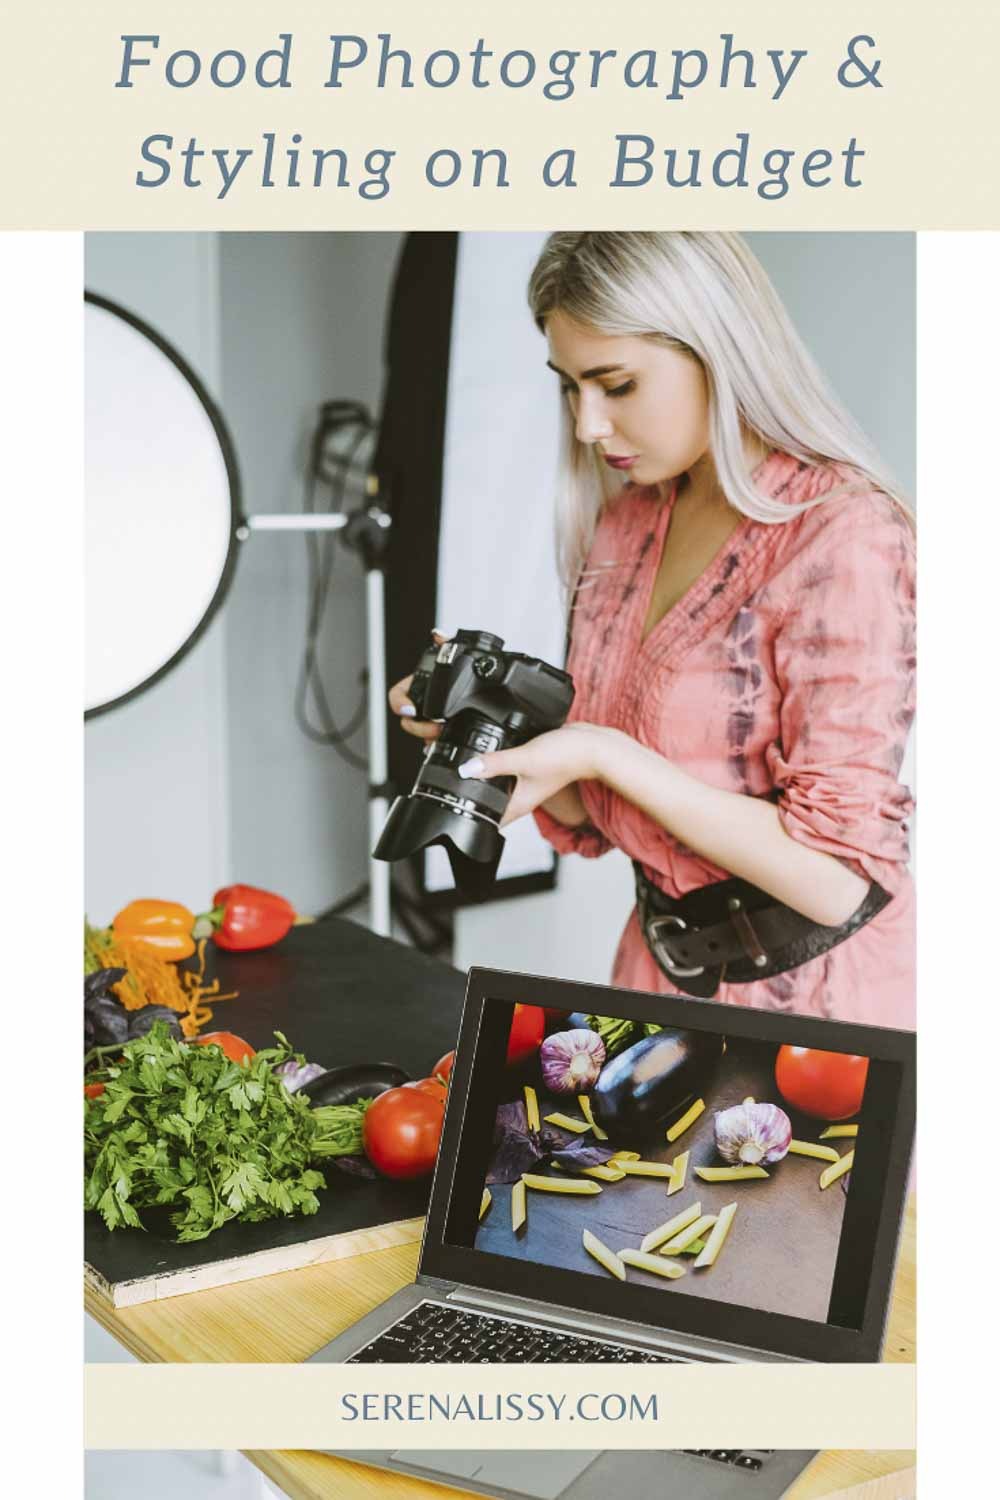 Food Photography on a Budget